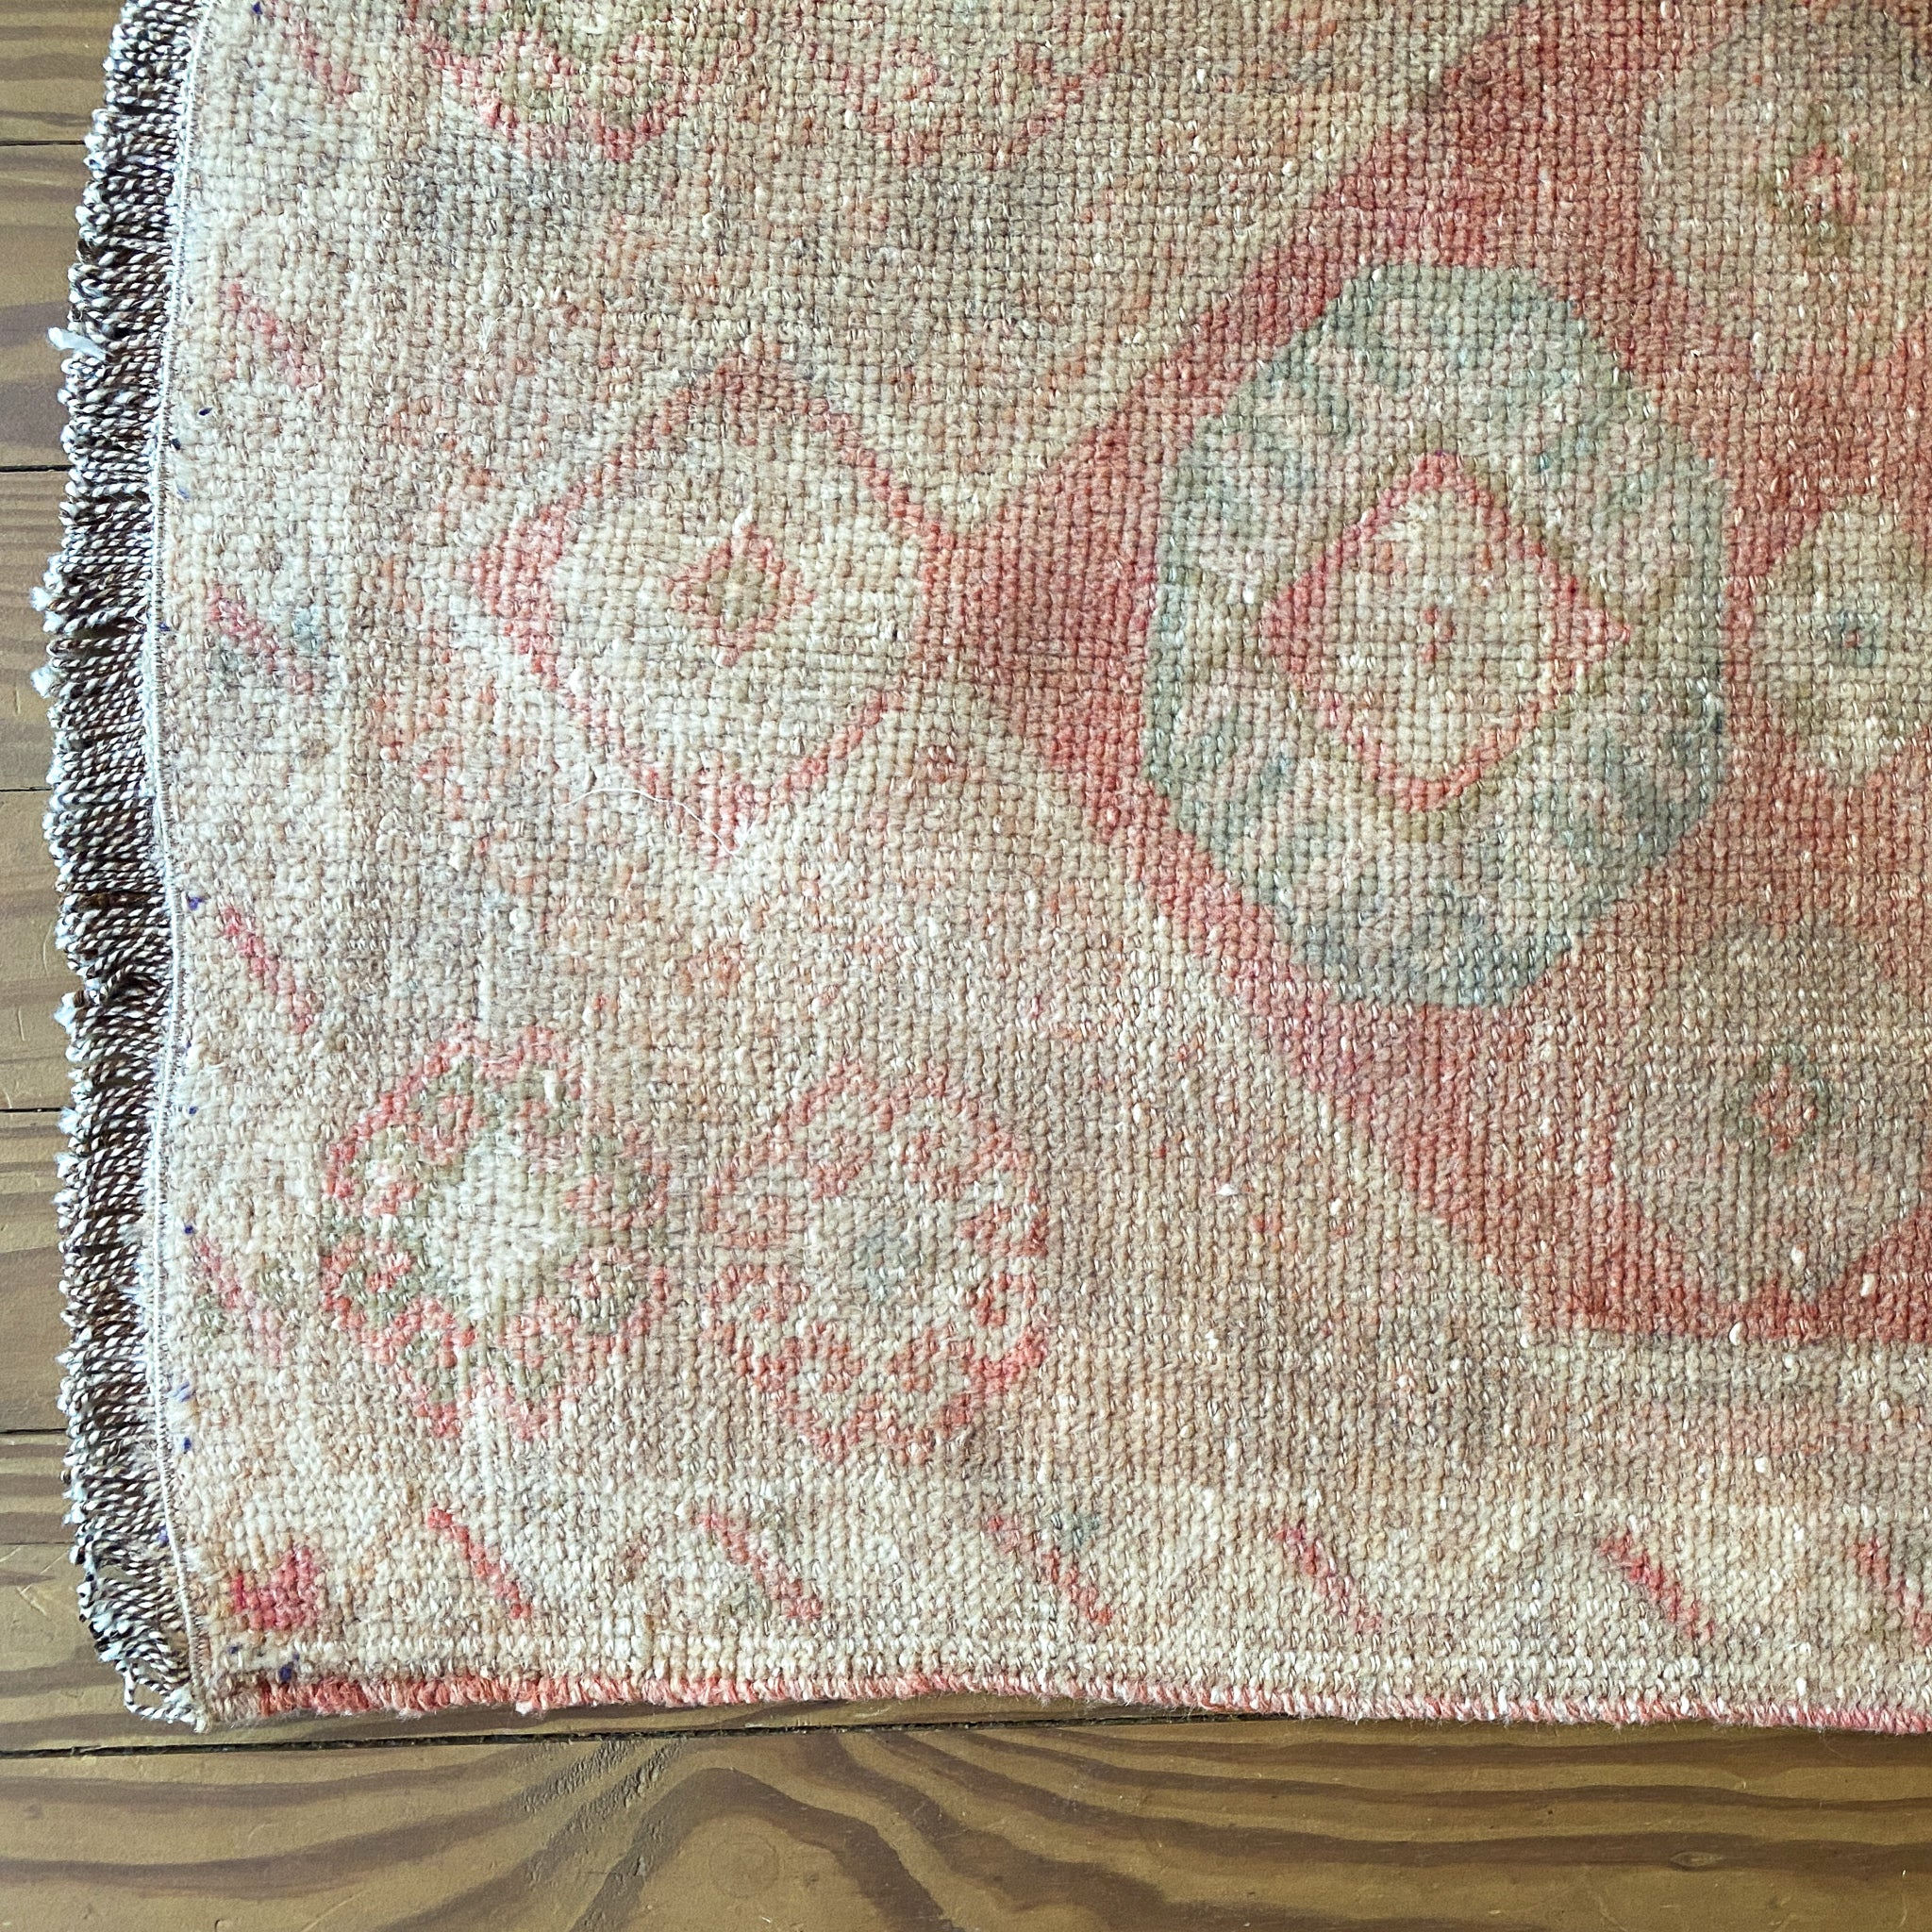 ON HOLD 2064 Handwoven Vintage Rug 1'10x3'4